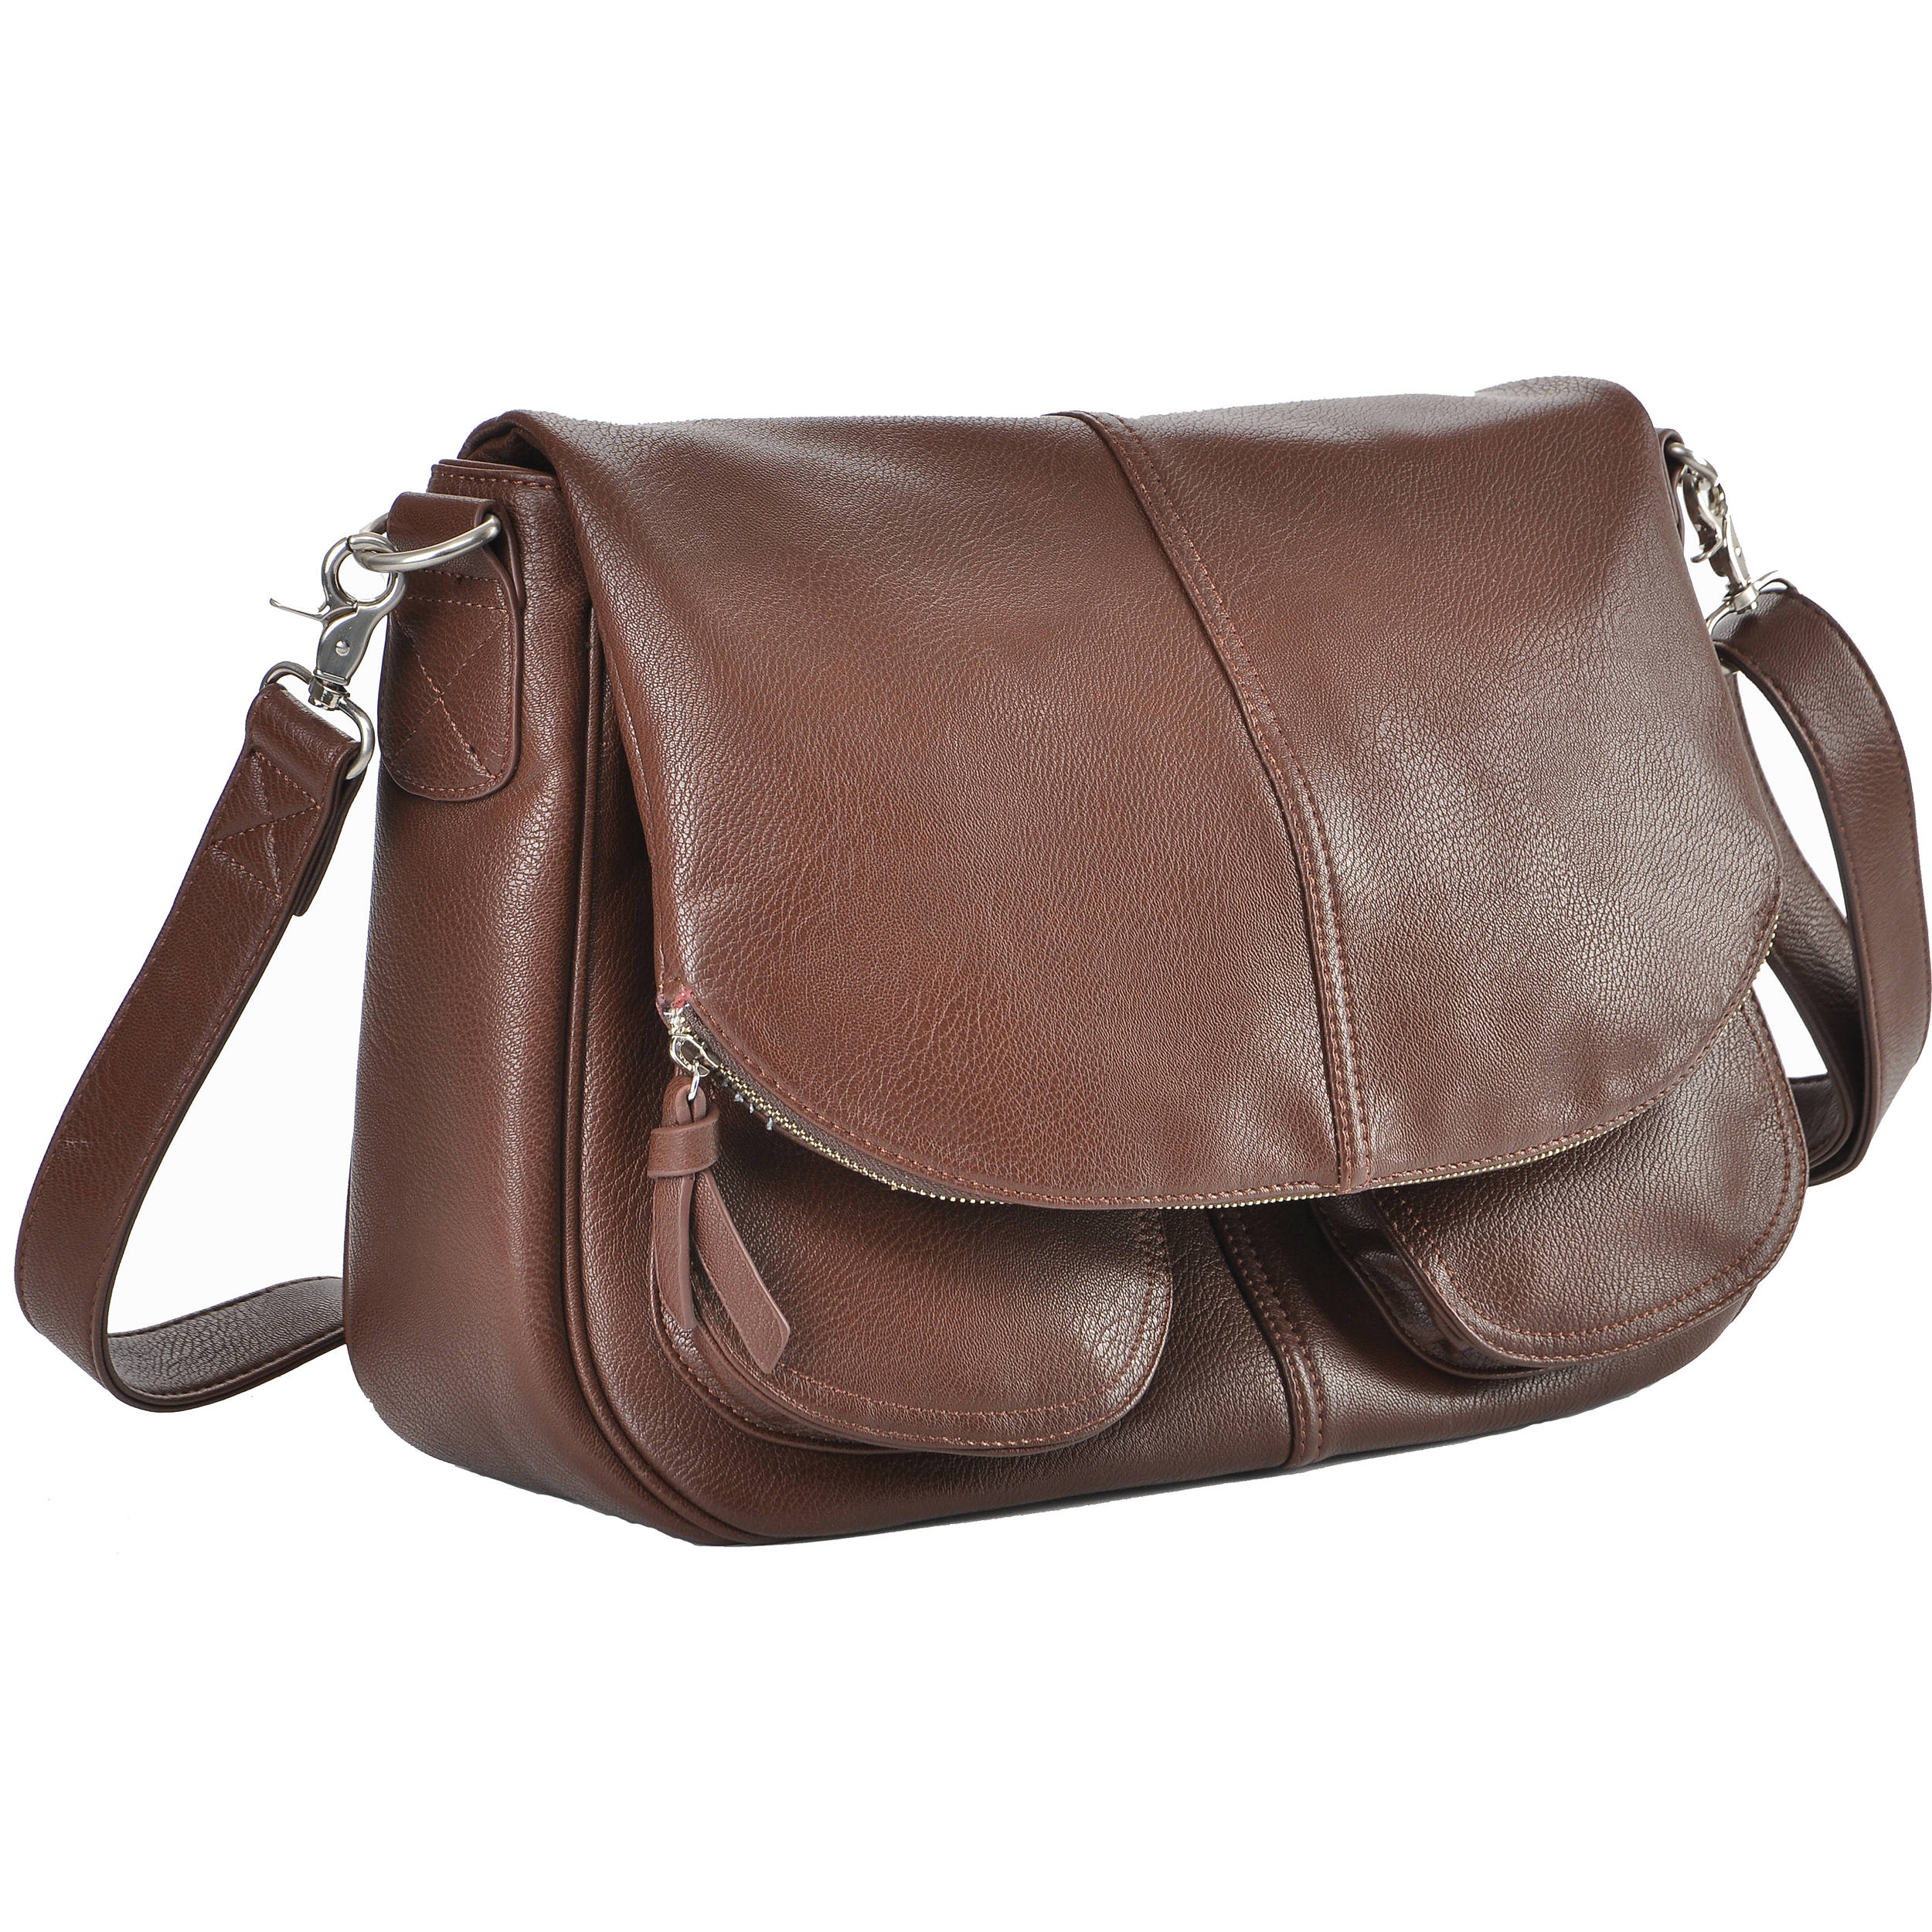 Jo Totes Betsy Camera Shoulder Bag 13